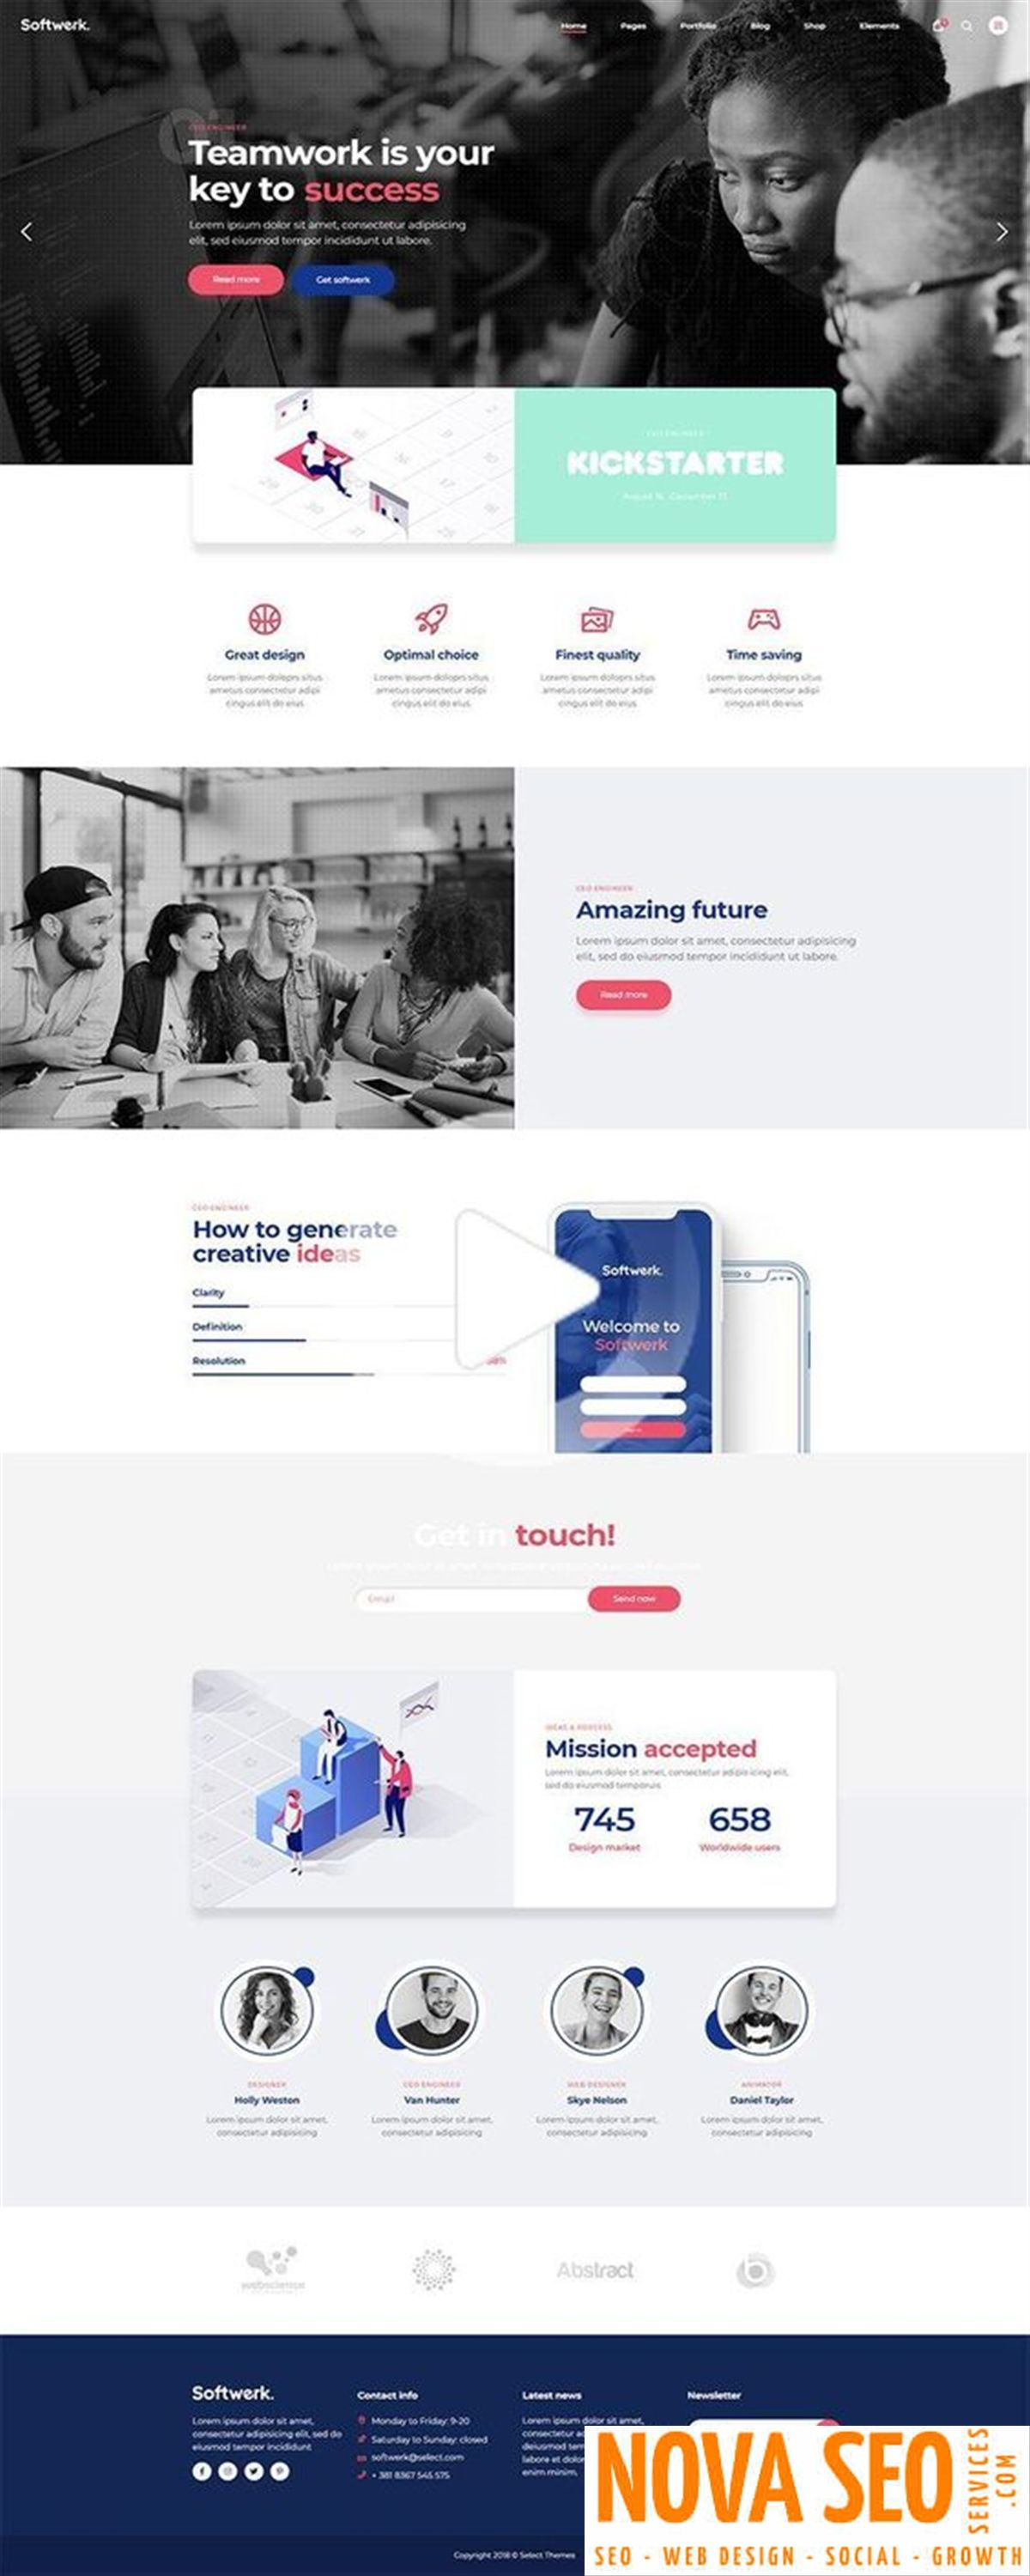 Web Sites Starting At 150 Search Engine Google Adwords Management Canada Web Design Company Lin In 2020 Agency Website Design Web Design Quotes Web Design Websites